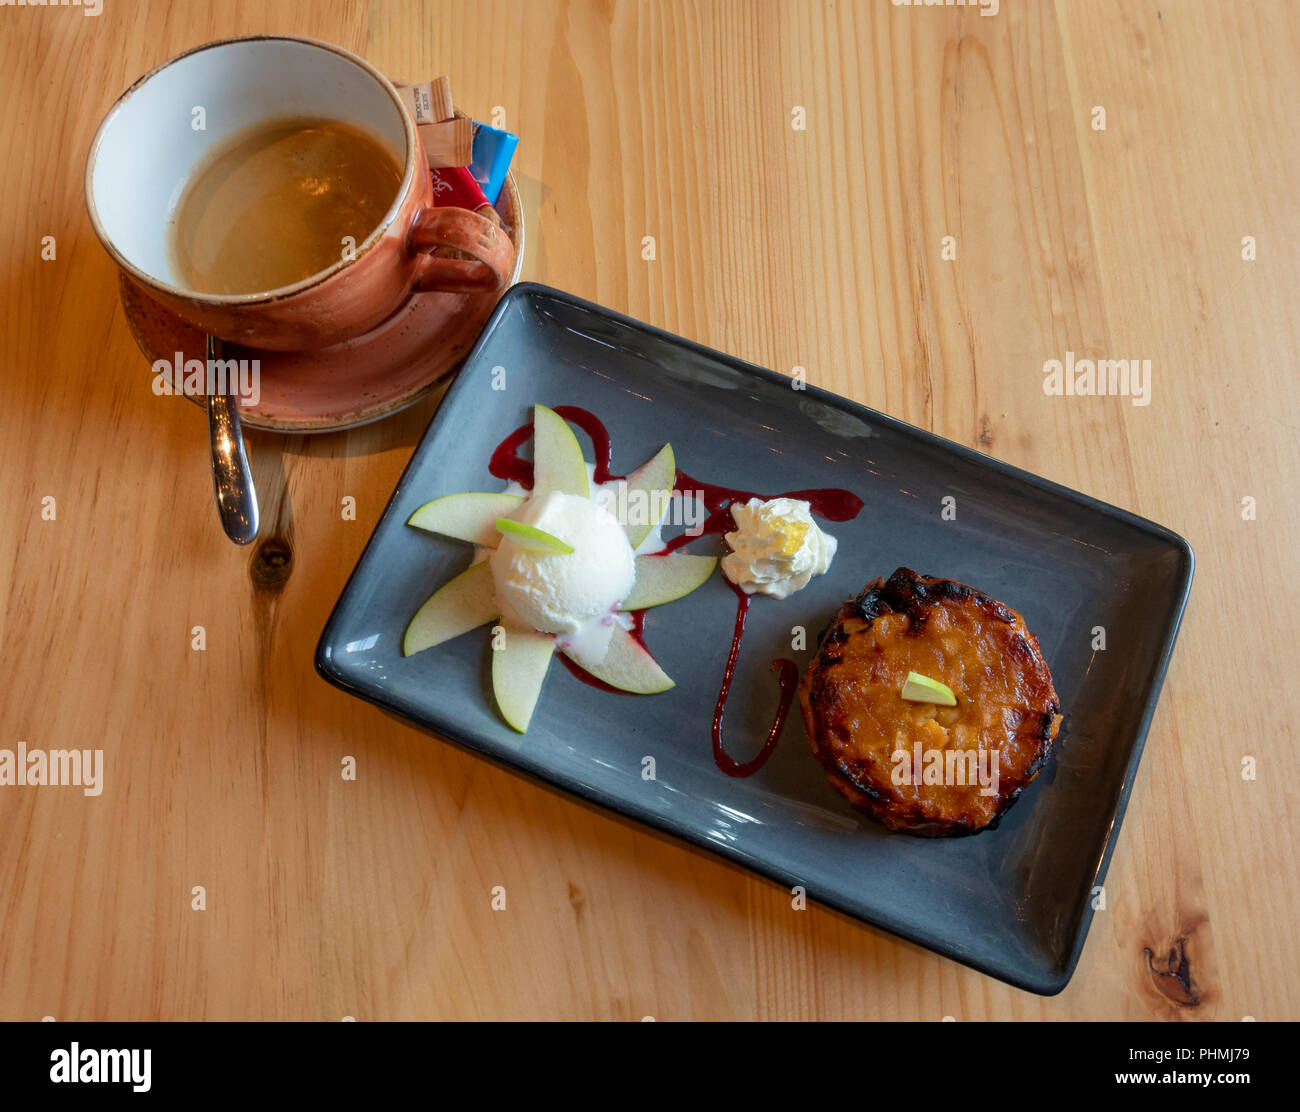 An apple turnover served with vanilla ice cream and coffee - Stock Image